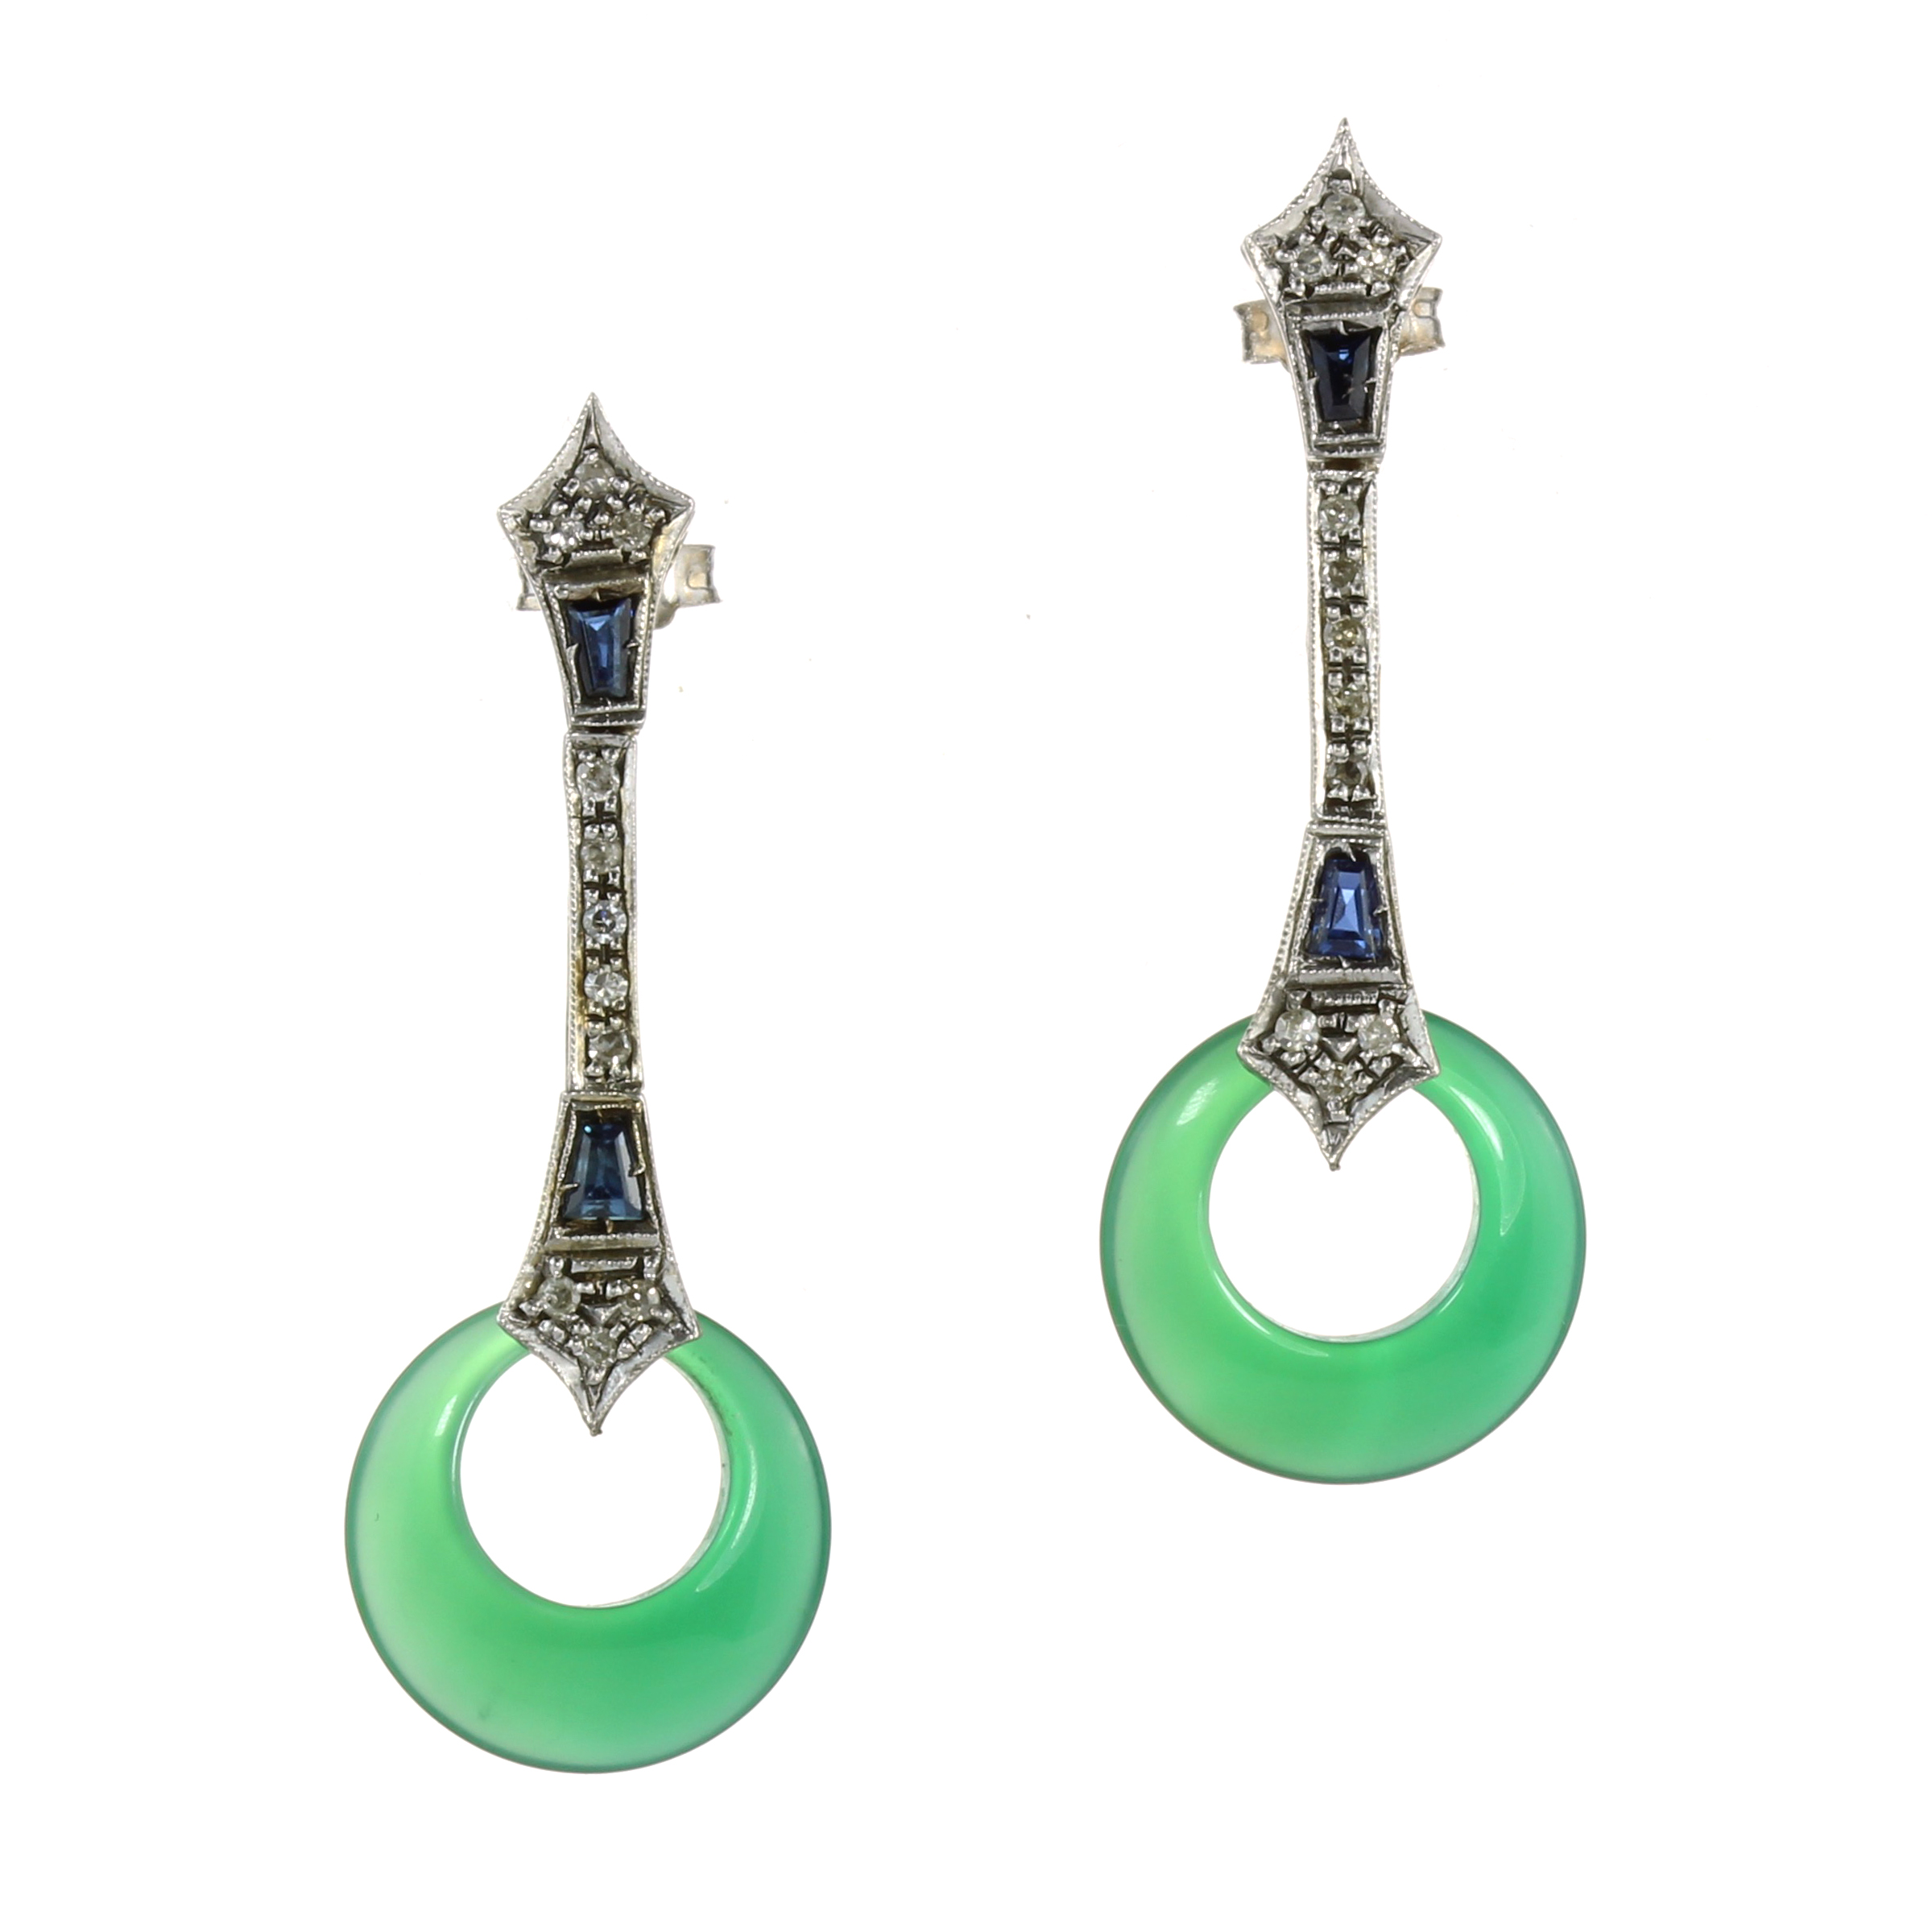 Los 32 - A PAIR OF ANTIQUE ART DECO JADE, SAPPHIRE AND DIAMOND EARRINGS in white gold or platinum, set with a